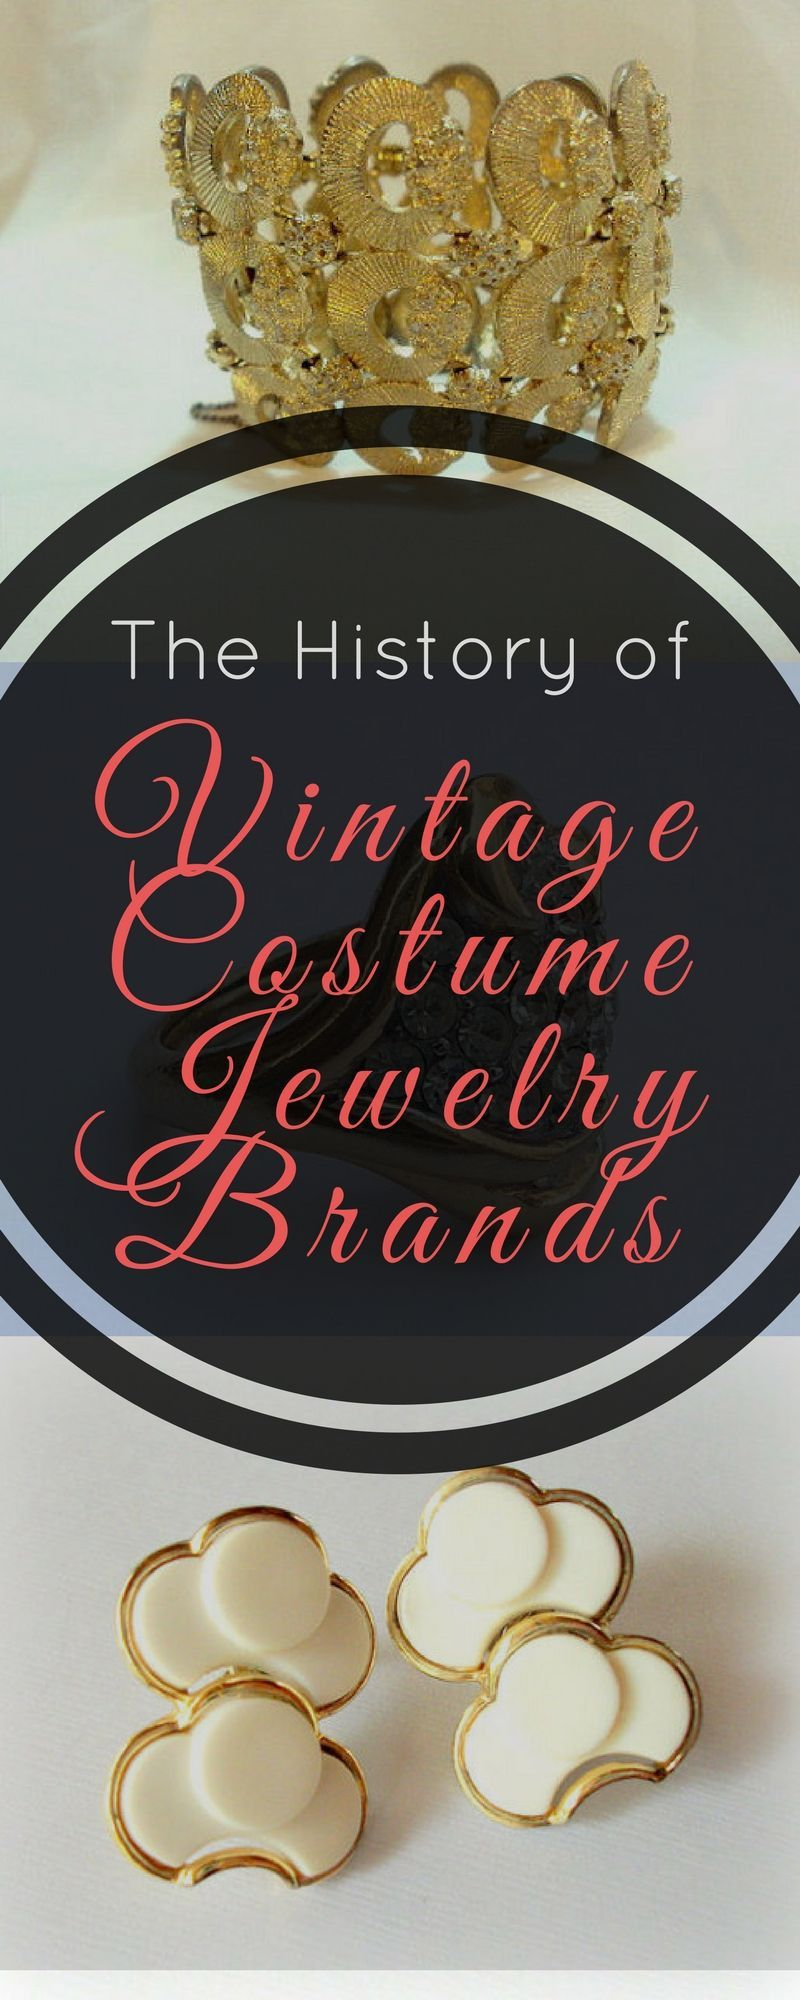 The History Of Vintage Costume Jewelry Brands Vintage Costumes Walmart Jewelry Costume Jewelry